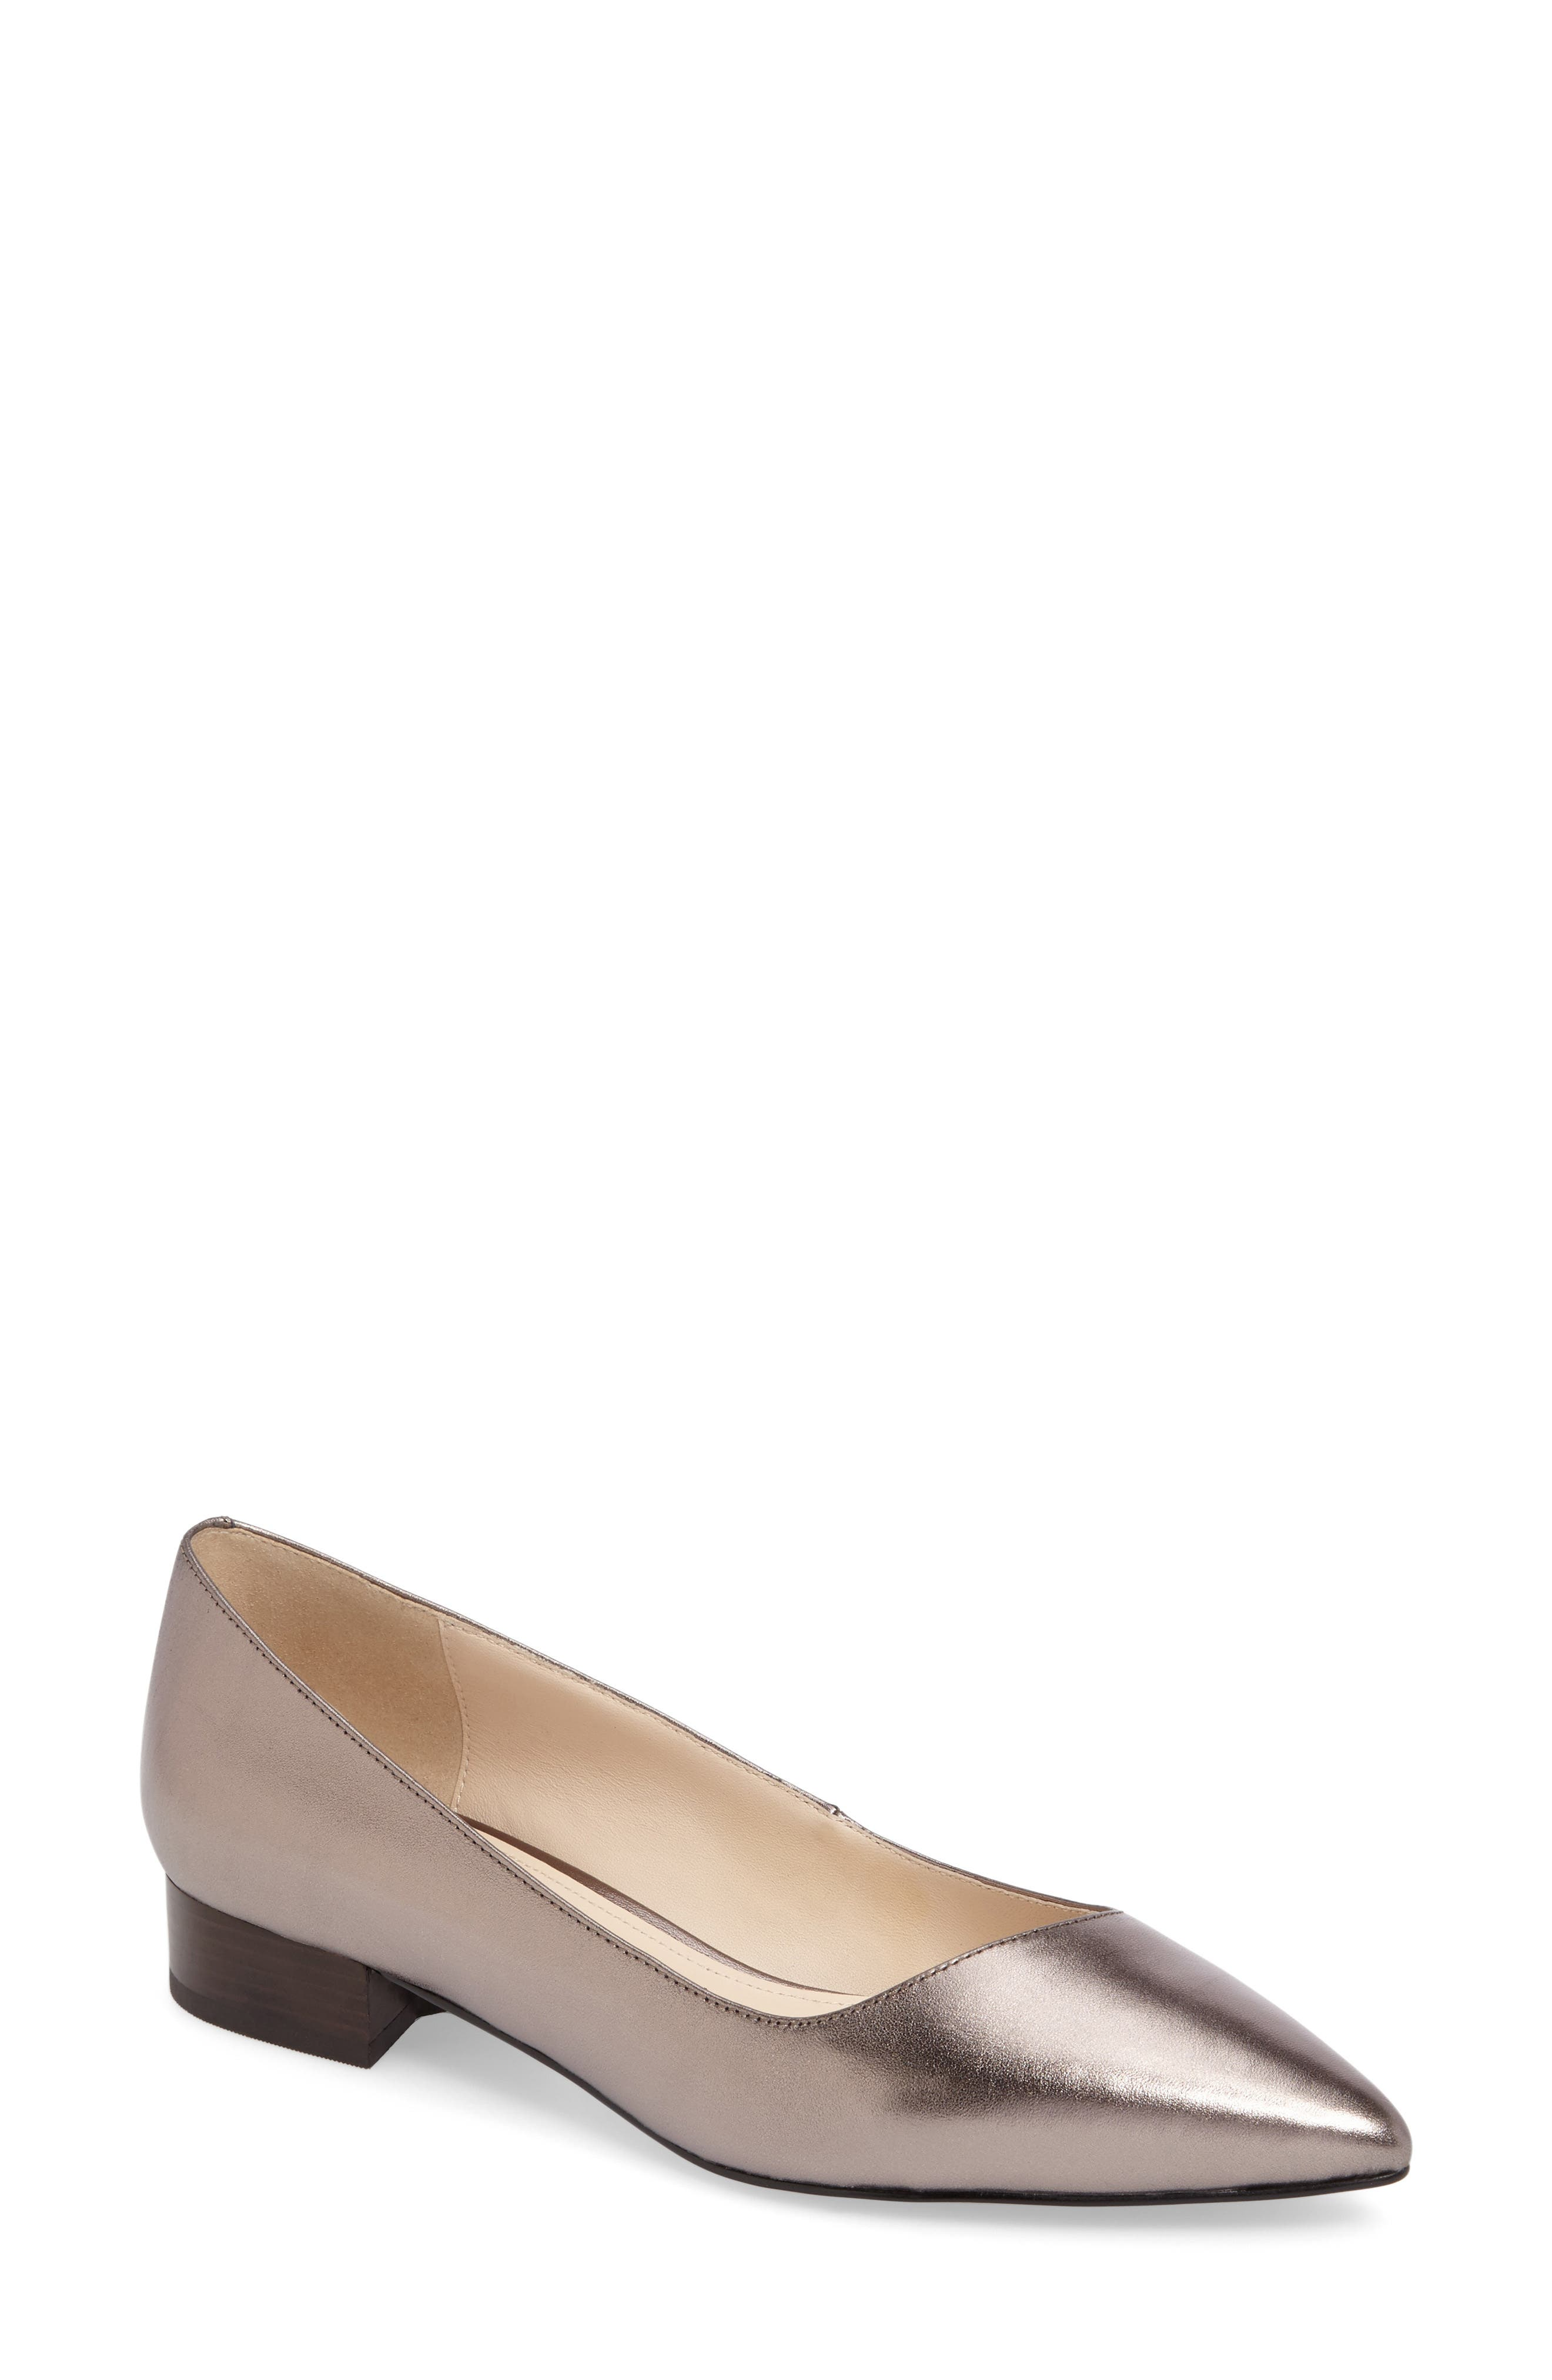 Alternate Image 1 Selected - Cole Haan Heidy Pointy Toe Flat (Women)